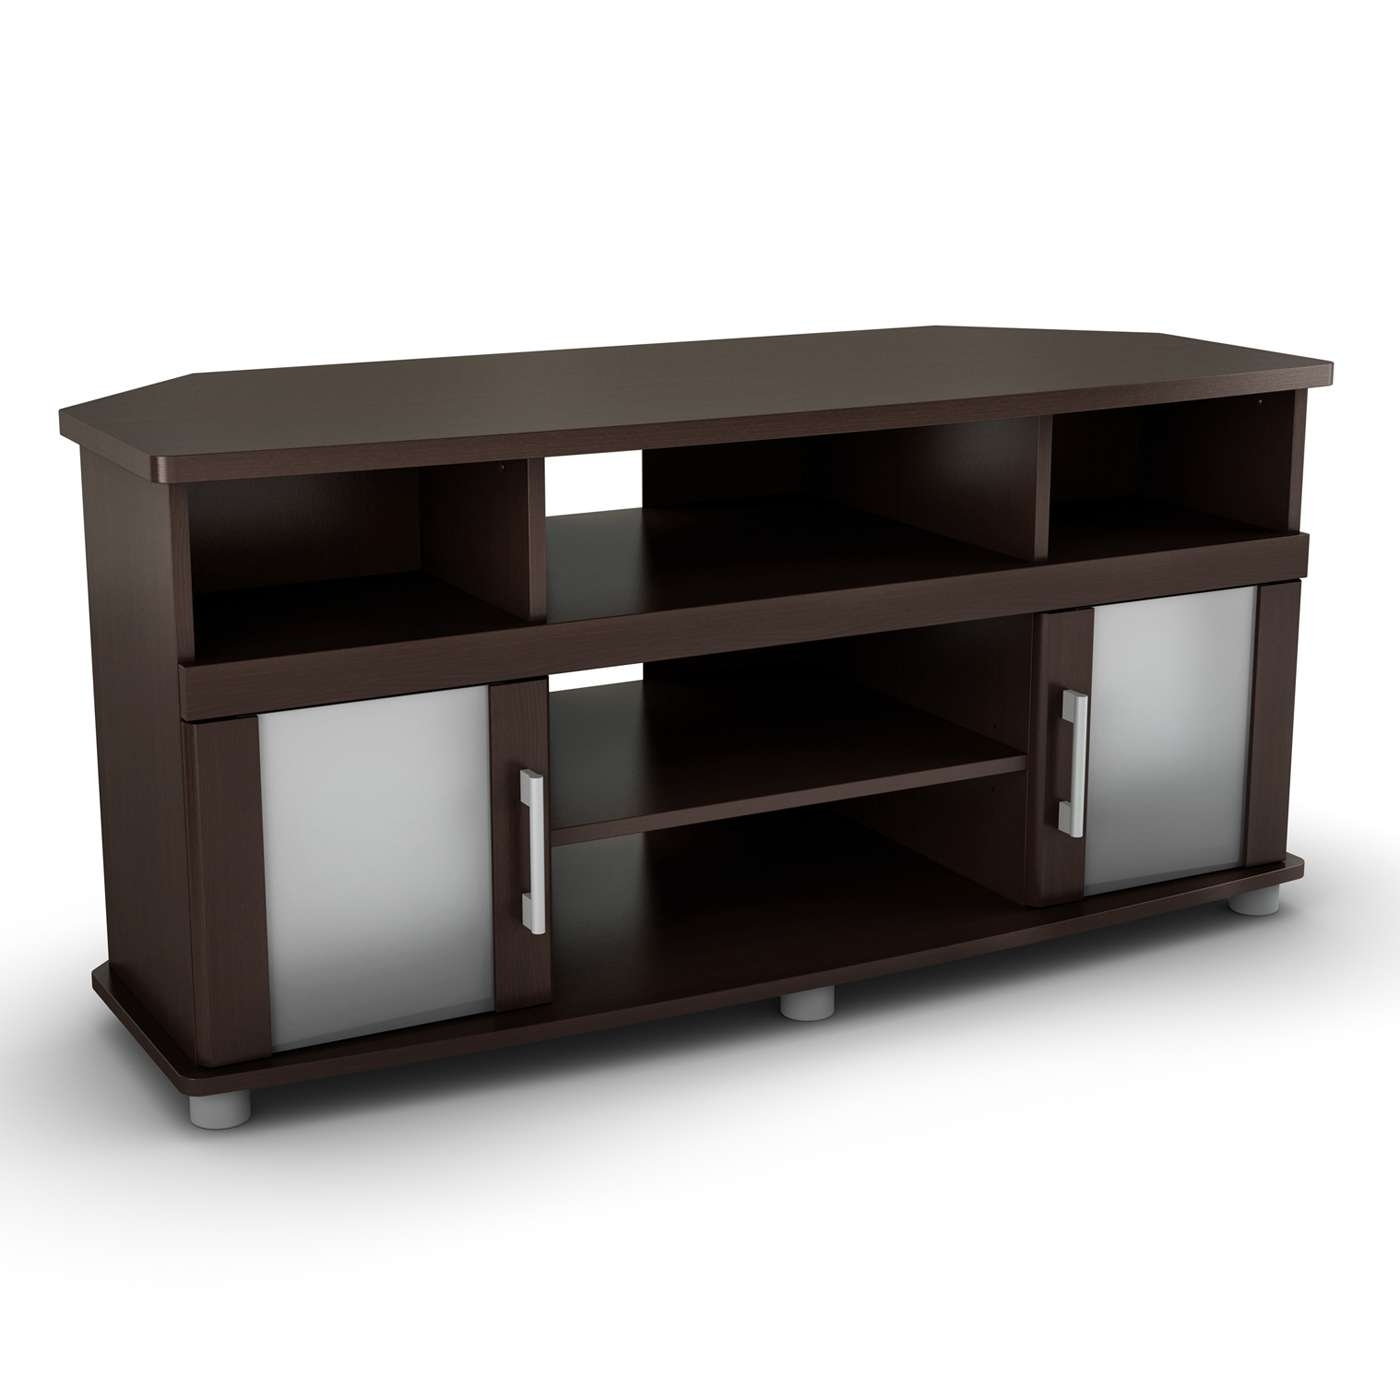 South Shore Furniture City Life Corner Tv Stand | Lowe's Canada In Corner Wooden Tv Stands (View 12 of 15)